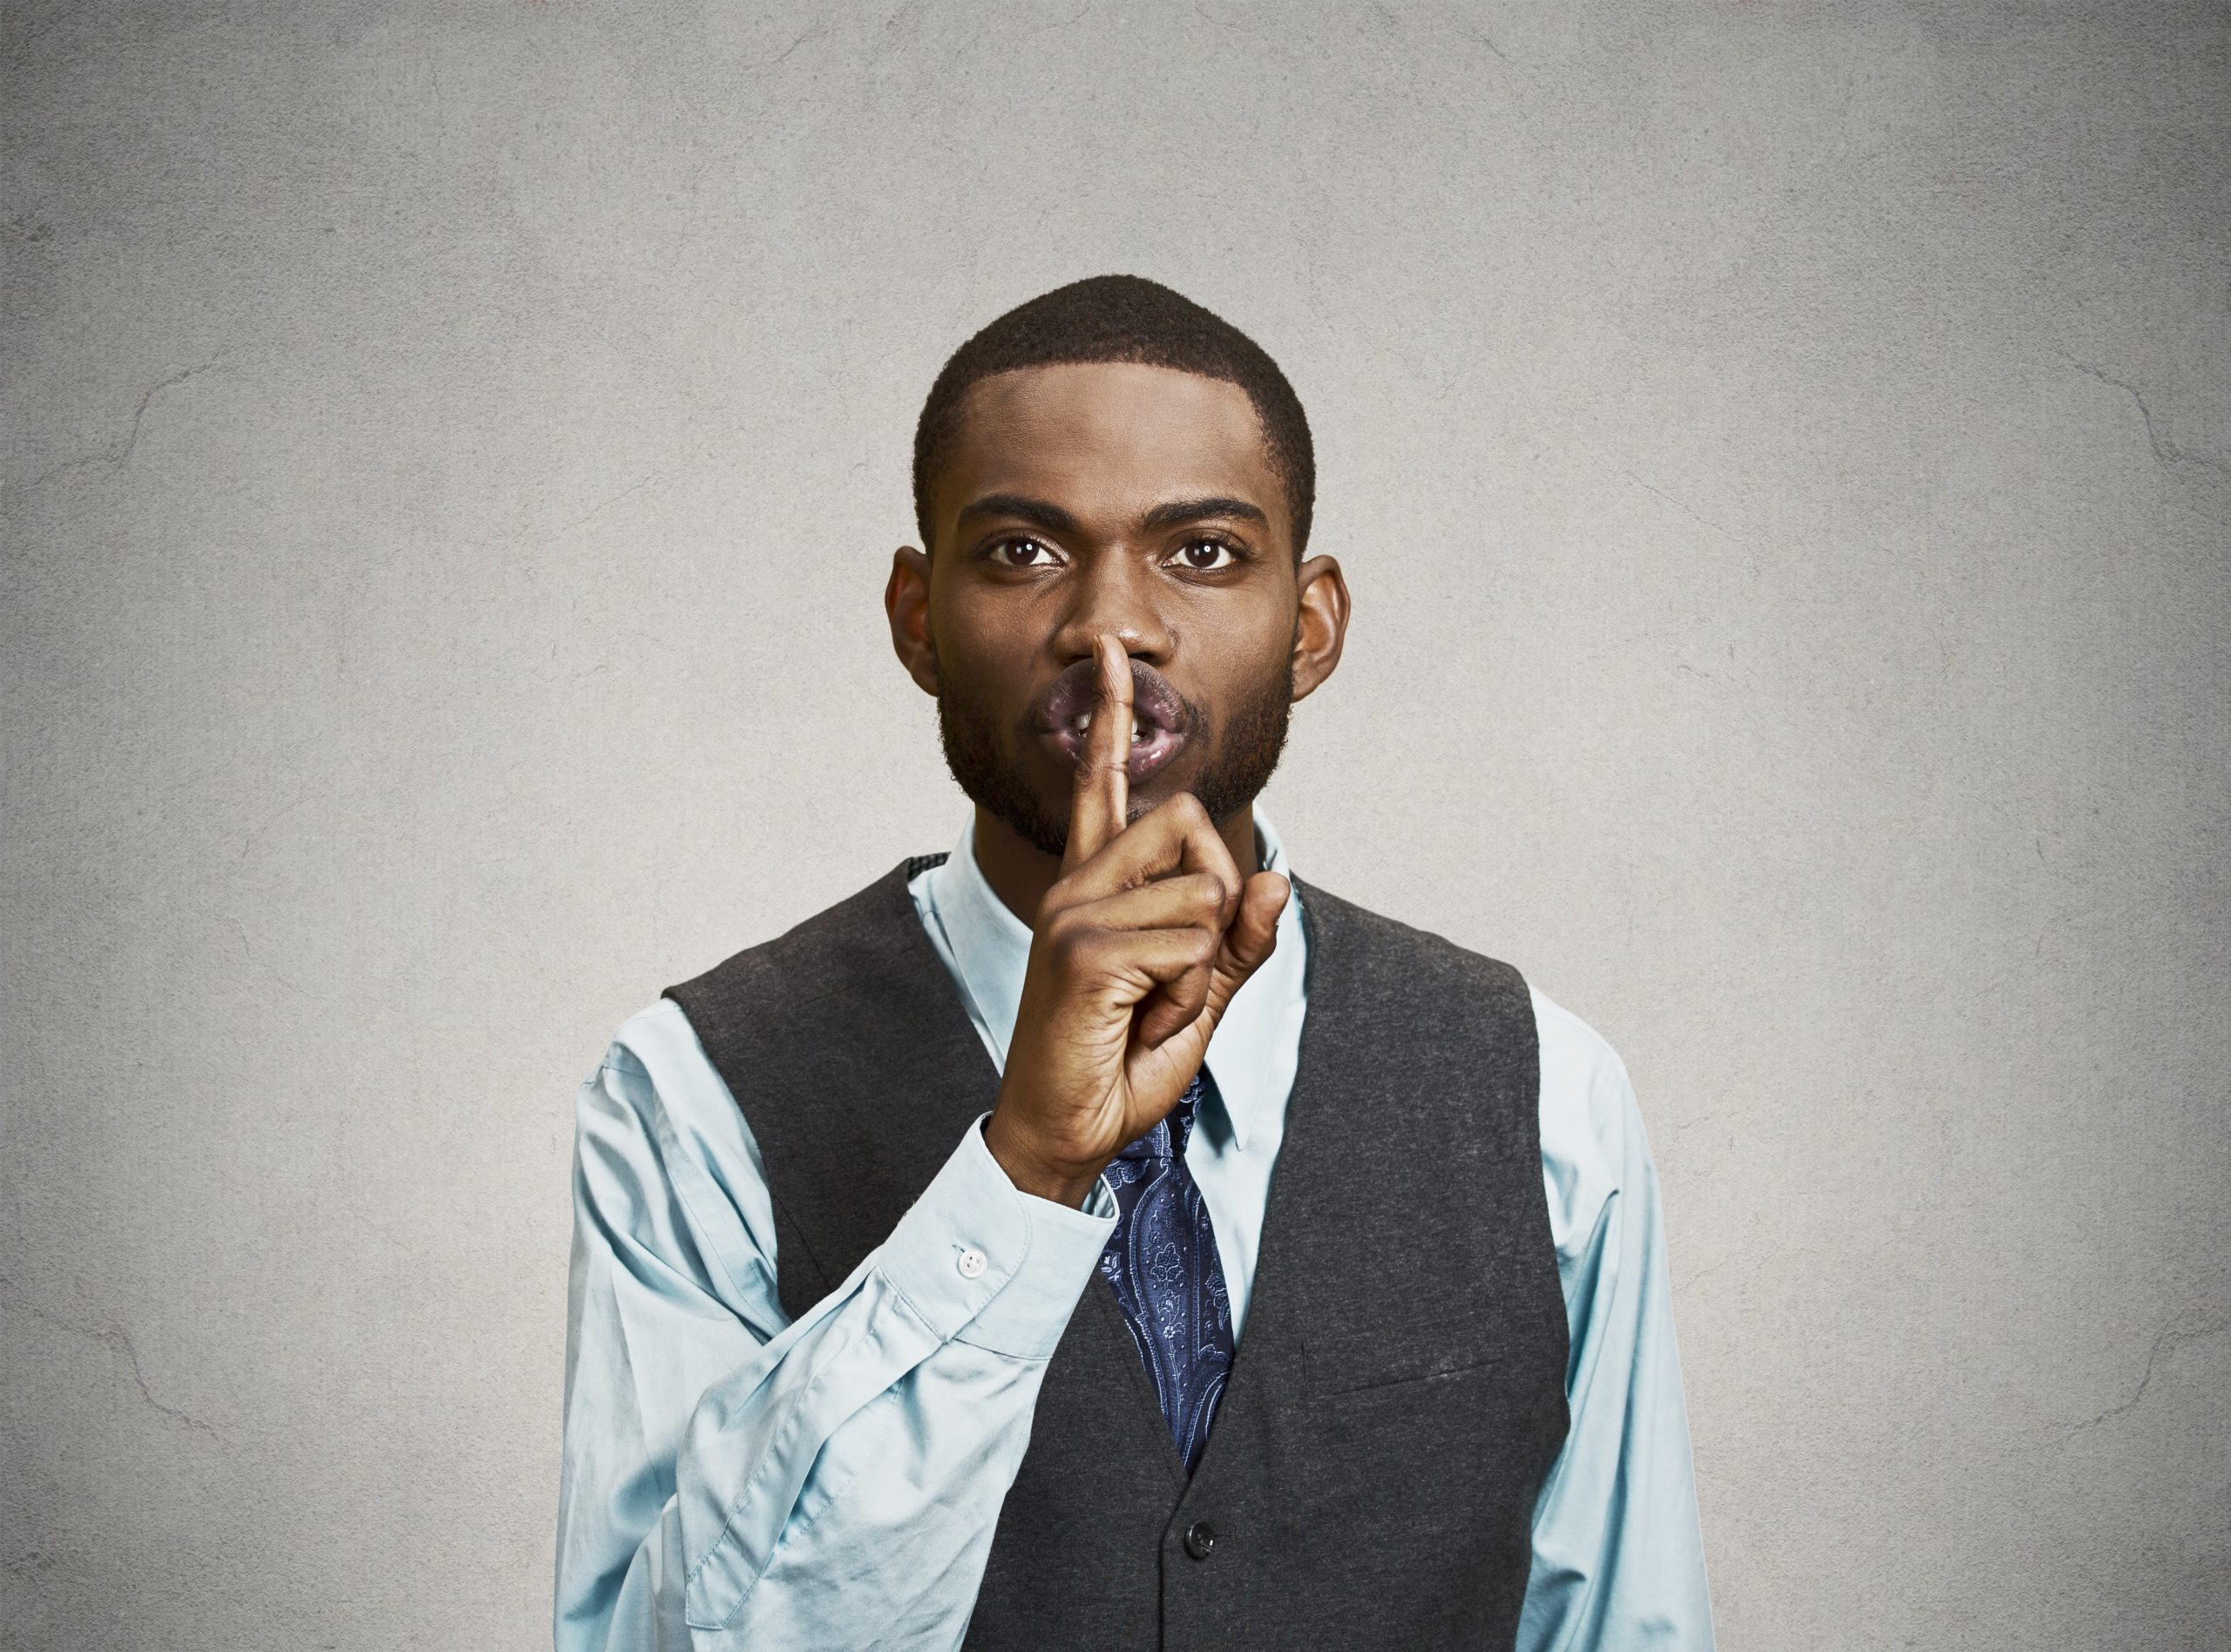 A man places a finger to his lips to let someone know they shouldn't share sensitive information. A lawyer and his legal insurance could tell him that a non-disclosure agreement would get the job done right.